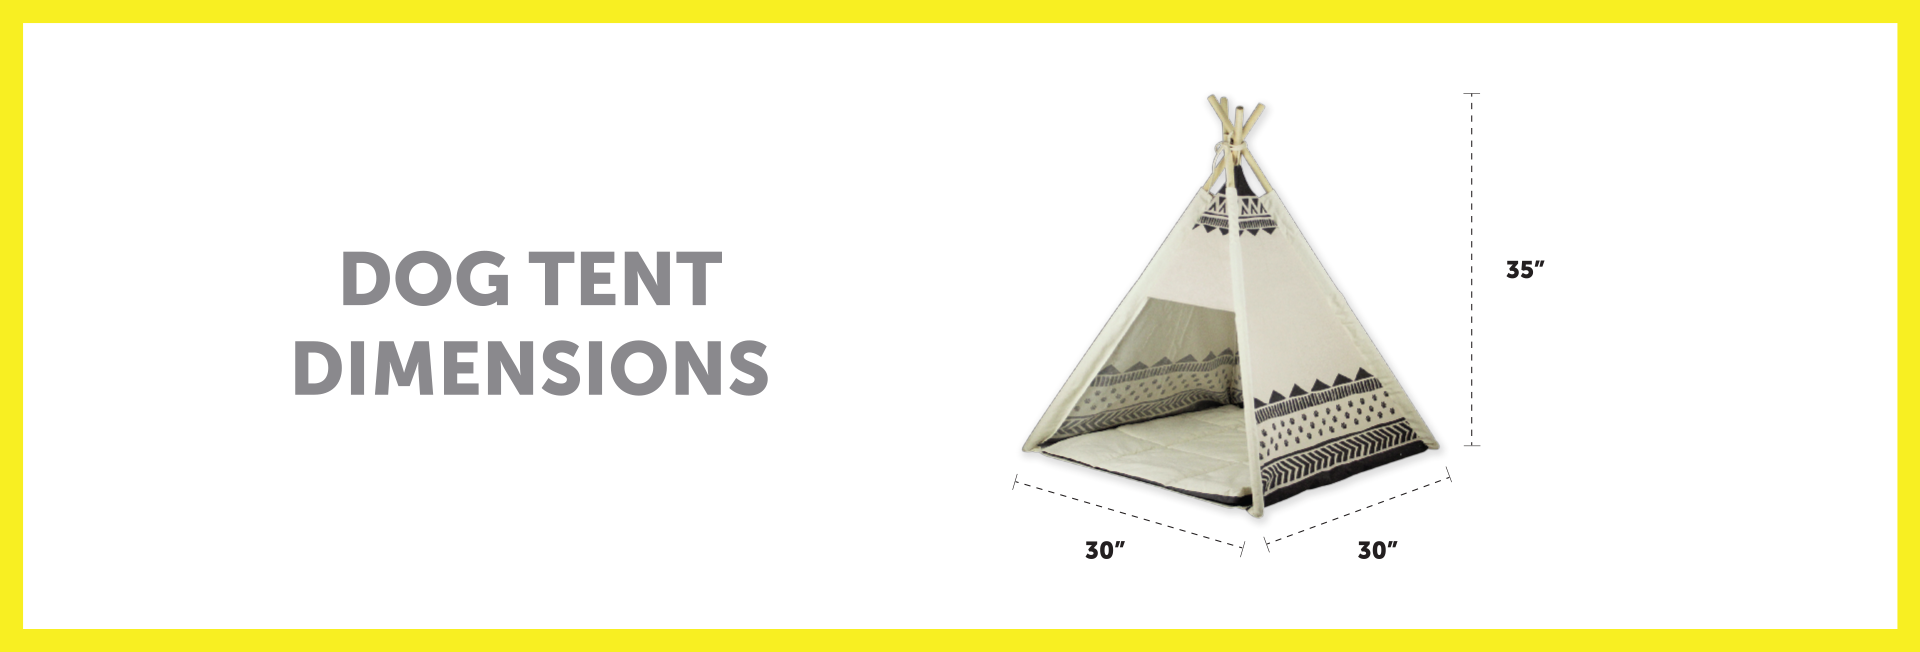 dimensions-tent-for-dogs-english